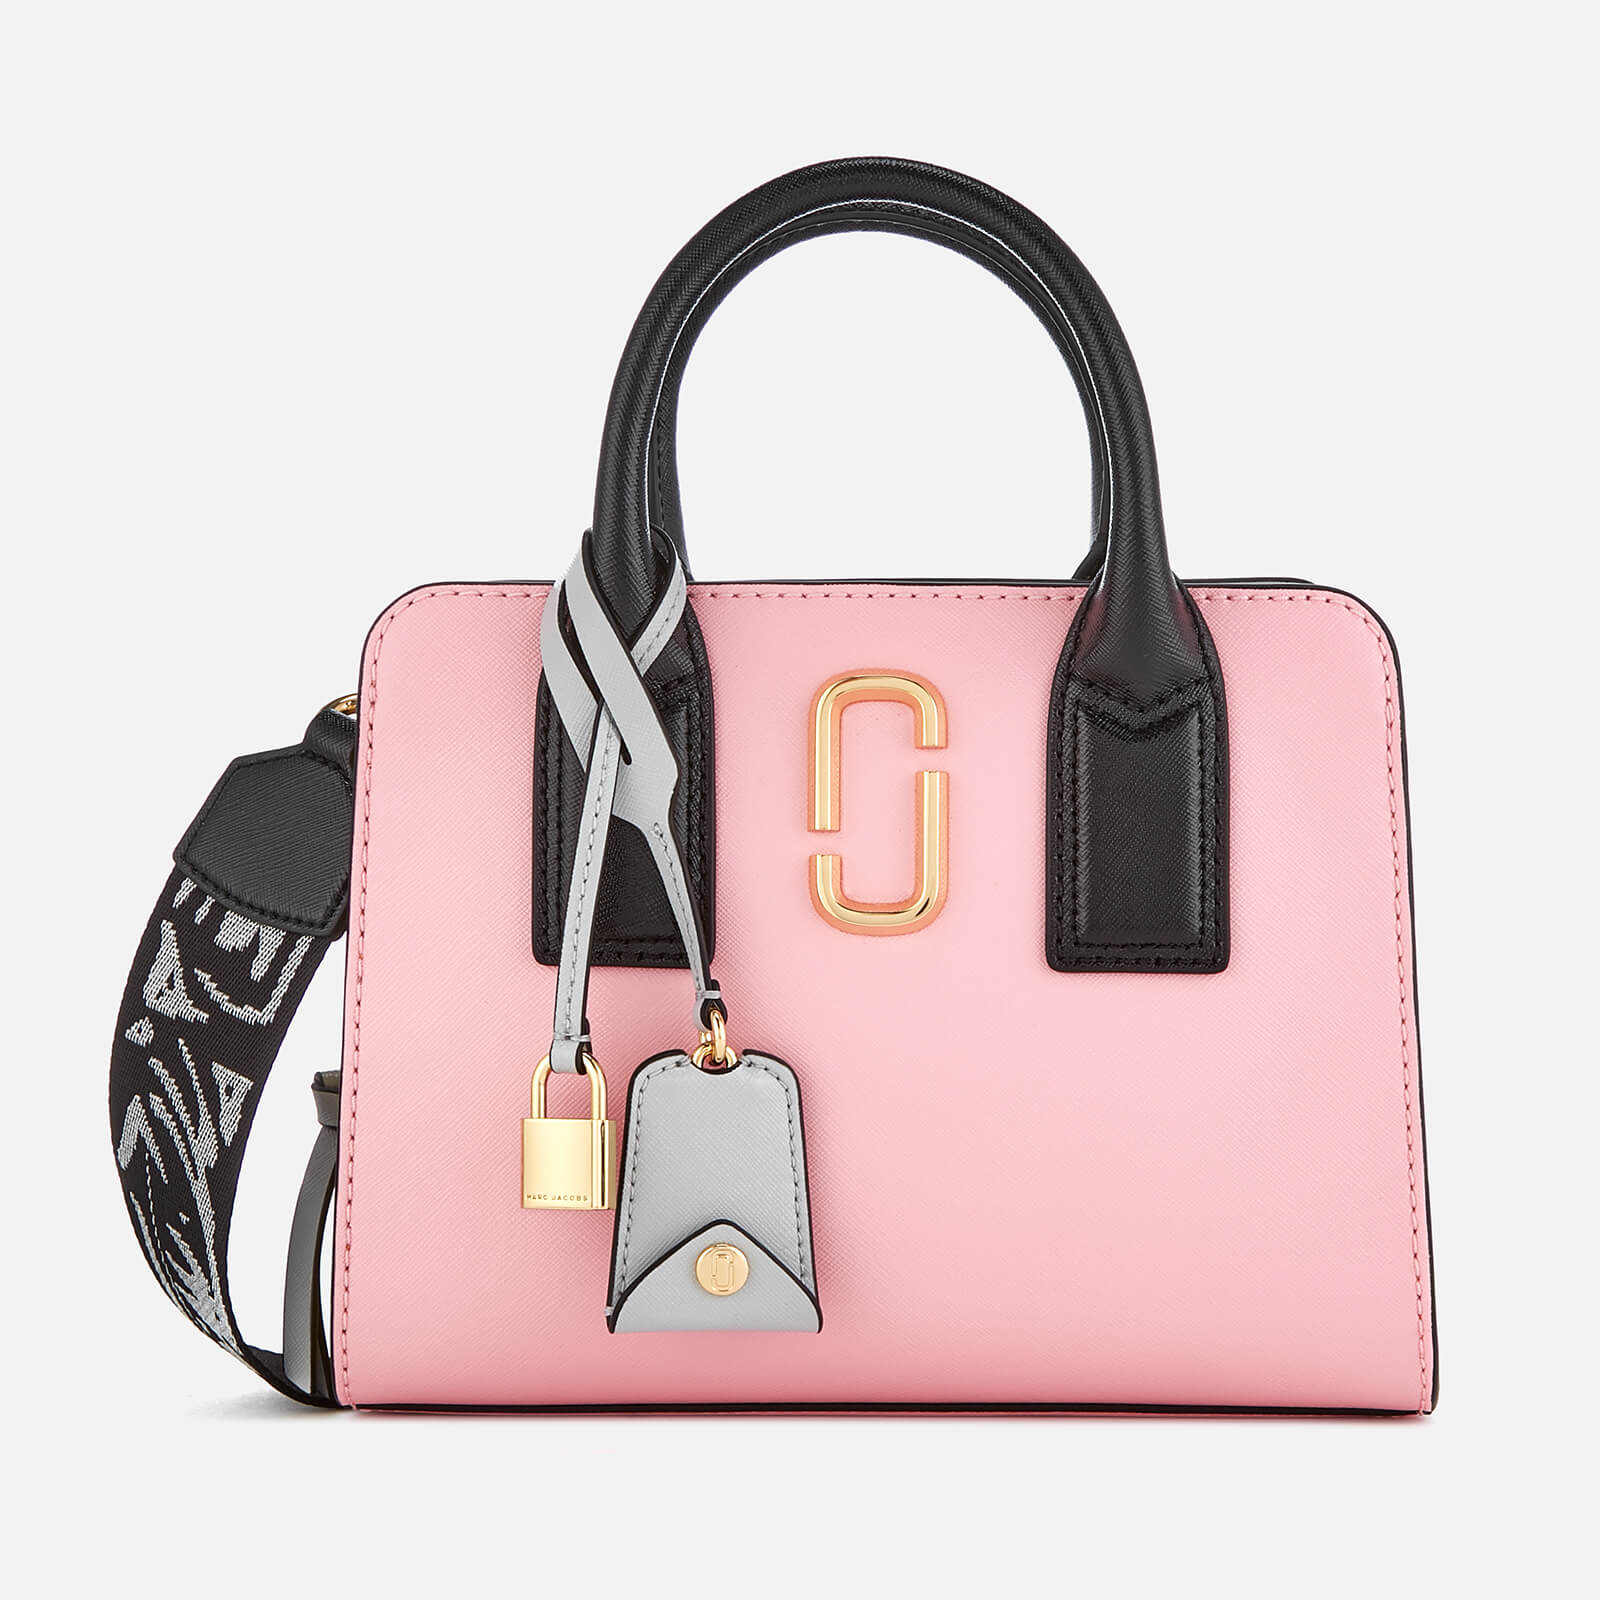 7a40a4ca861b Marc Jacobs Women s Little Big Shot Tote Bag - Baby Pink - Free UK Delivery  over £50